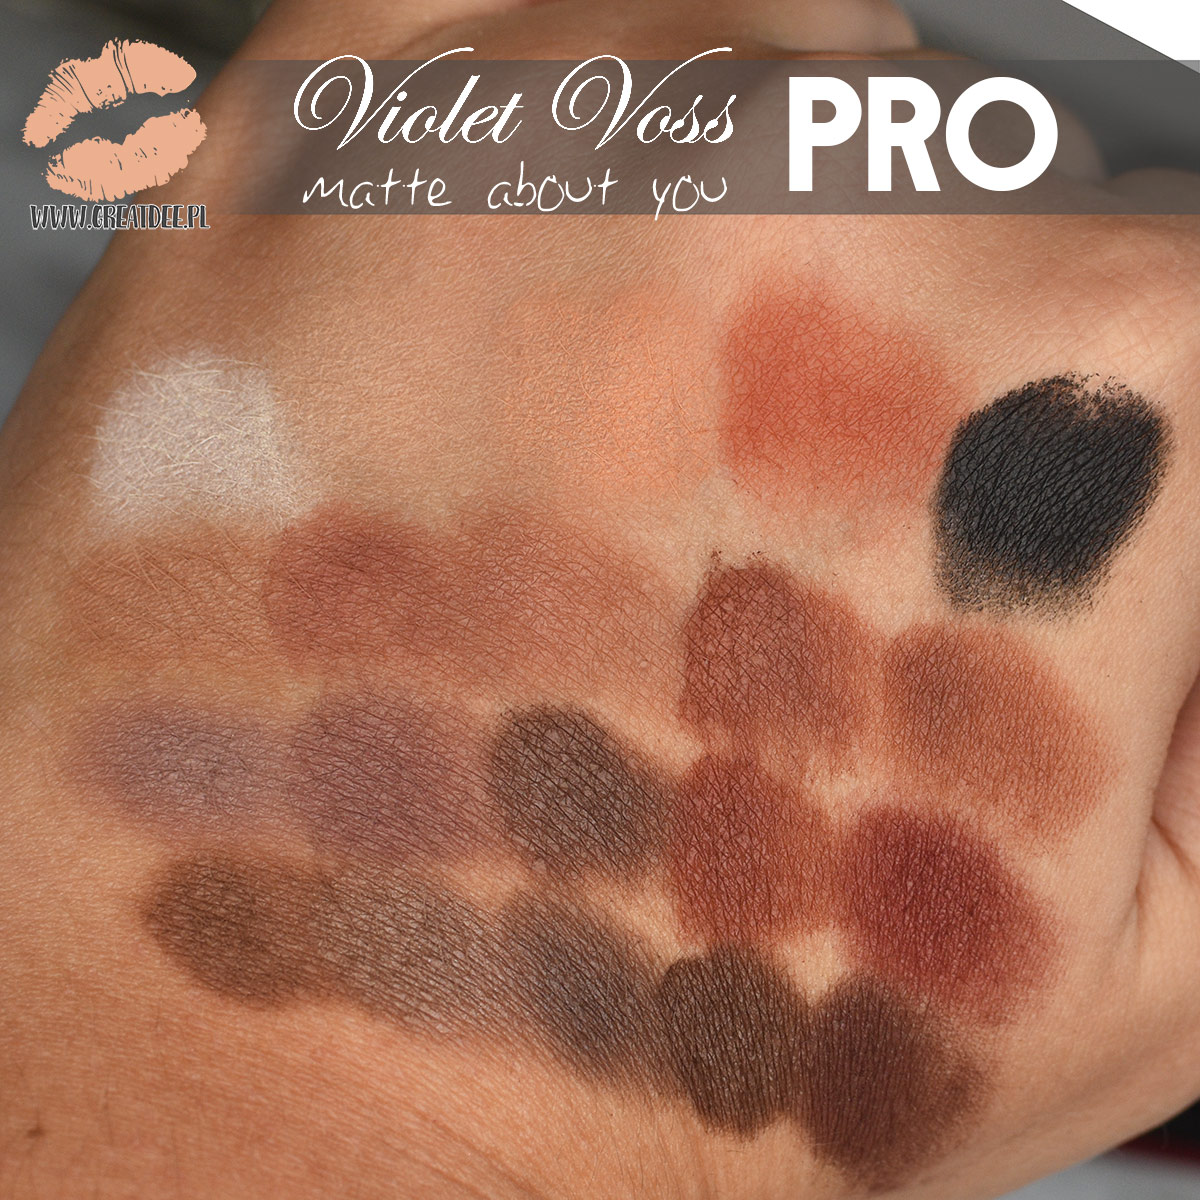 Violet Voss PRO matte about you swatche